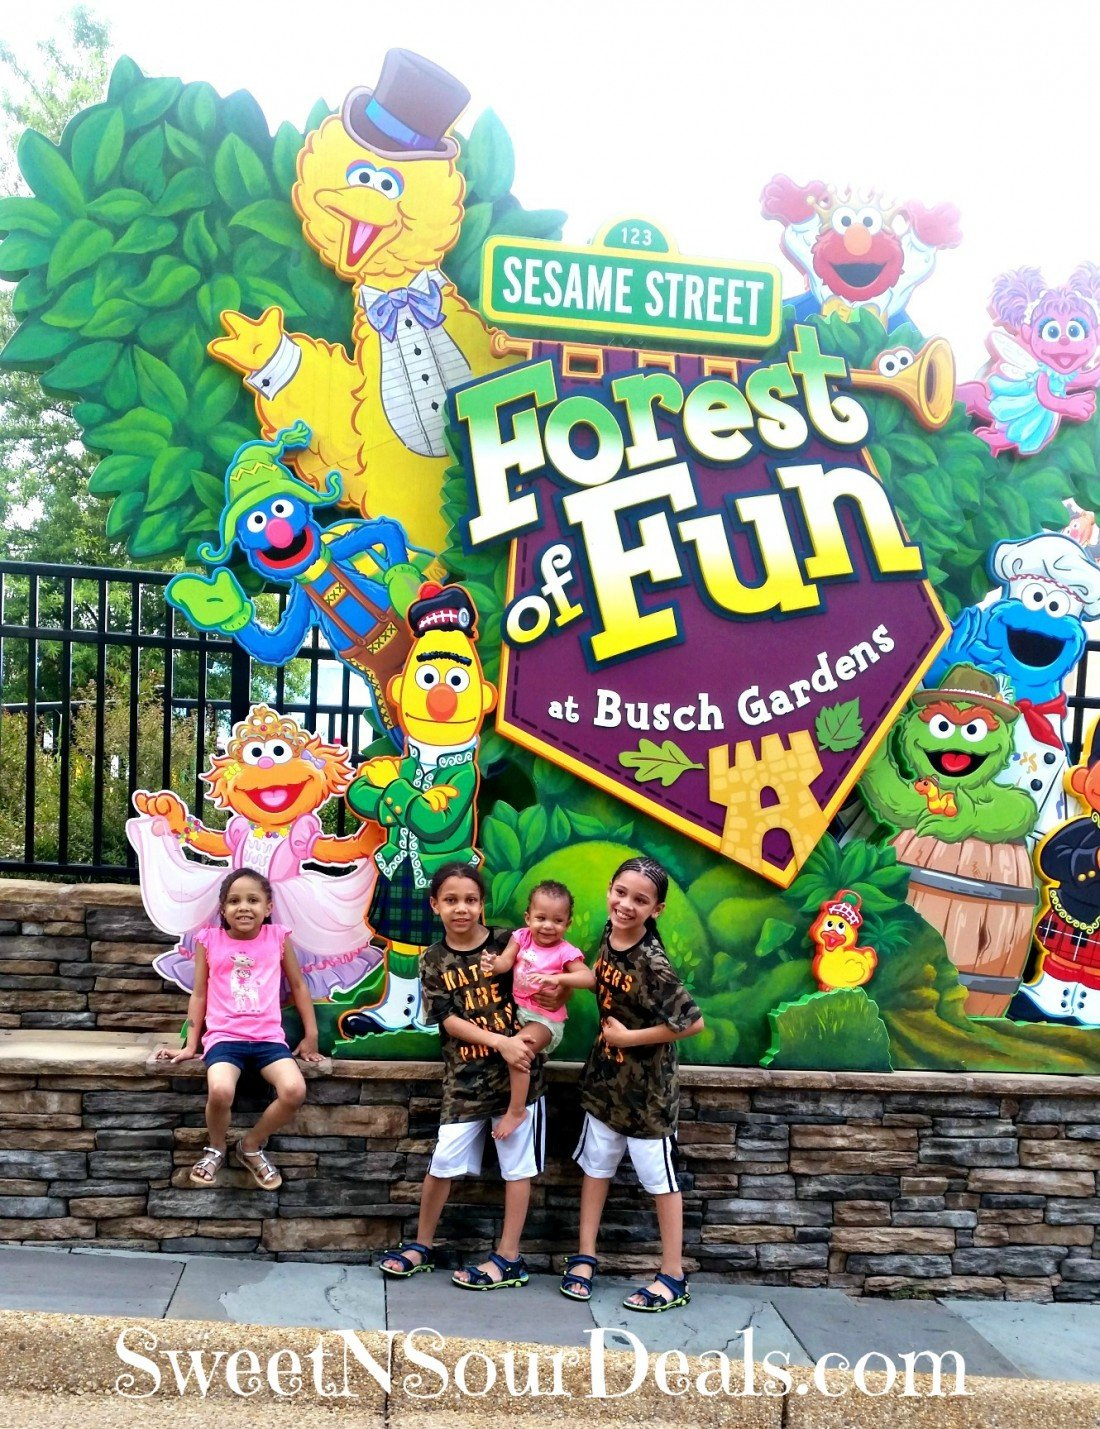 Named the most beautiful theme park for over 28 years, Busch Gardens Williamsburg the ultimate family-friendly park. Today I am sharing 5 Kid-Friendly Attractions at Busch Gardens Williamsburg, for families with small children.